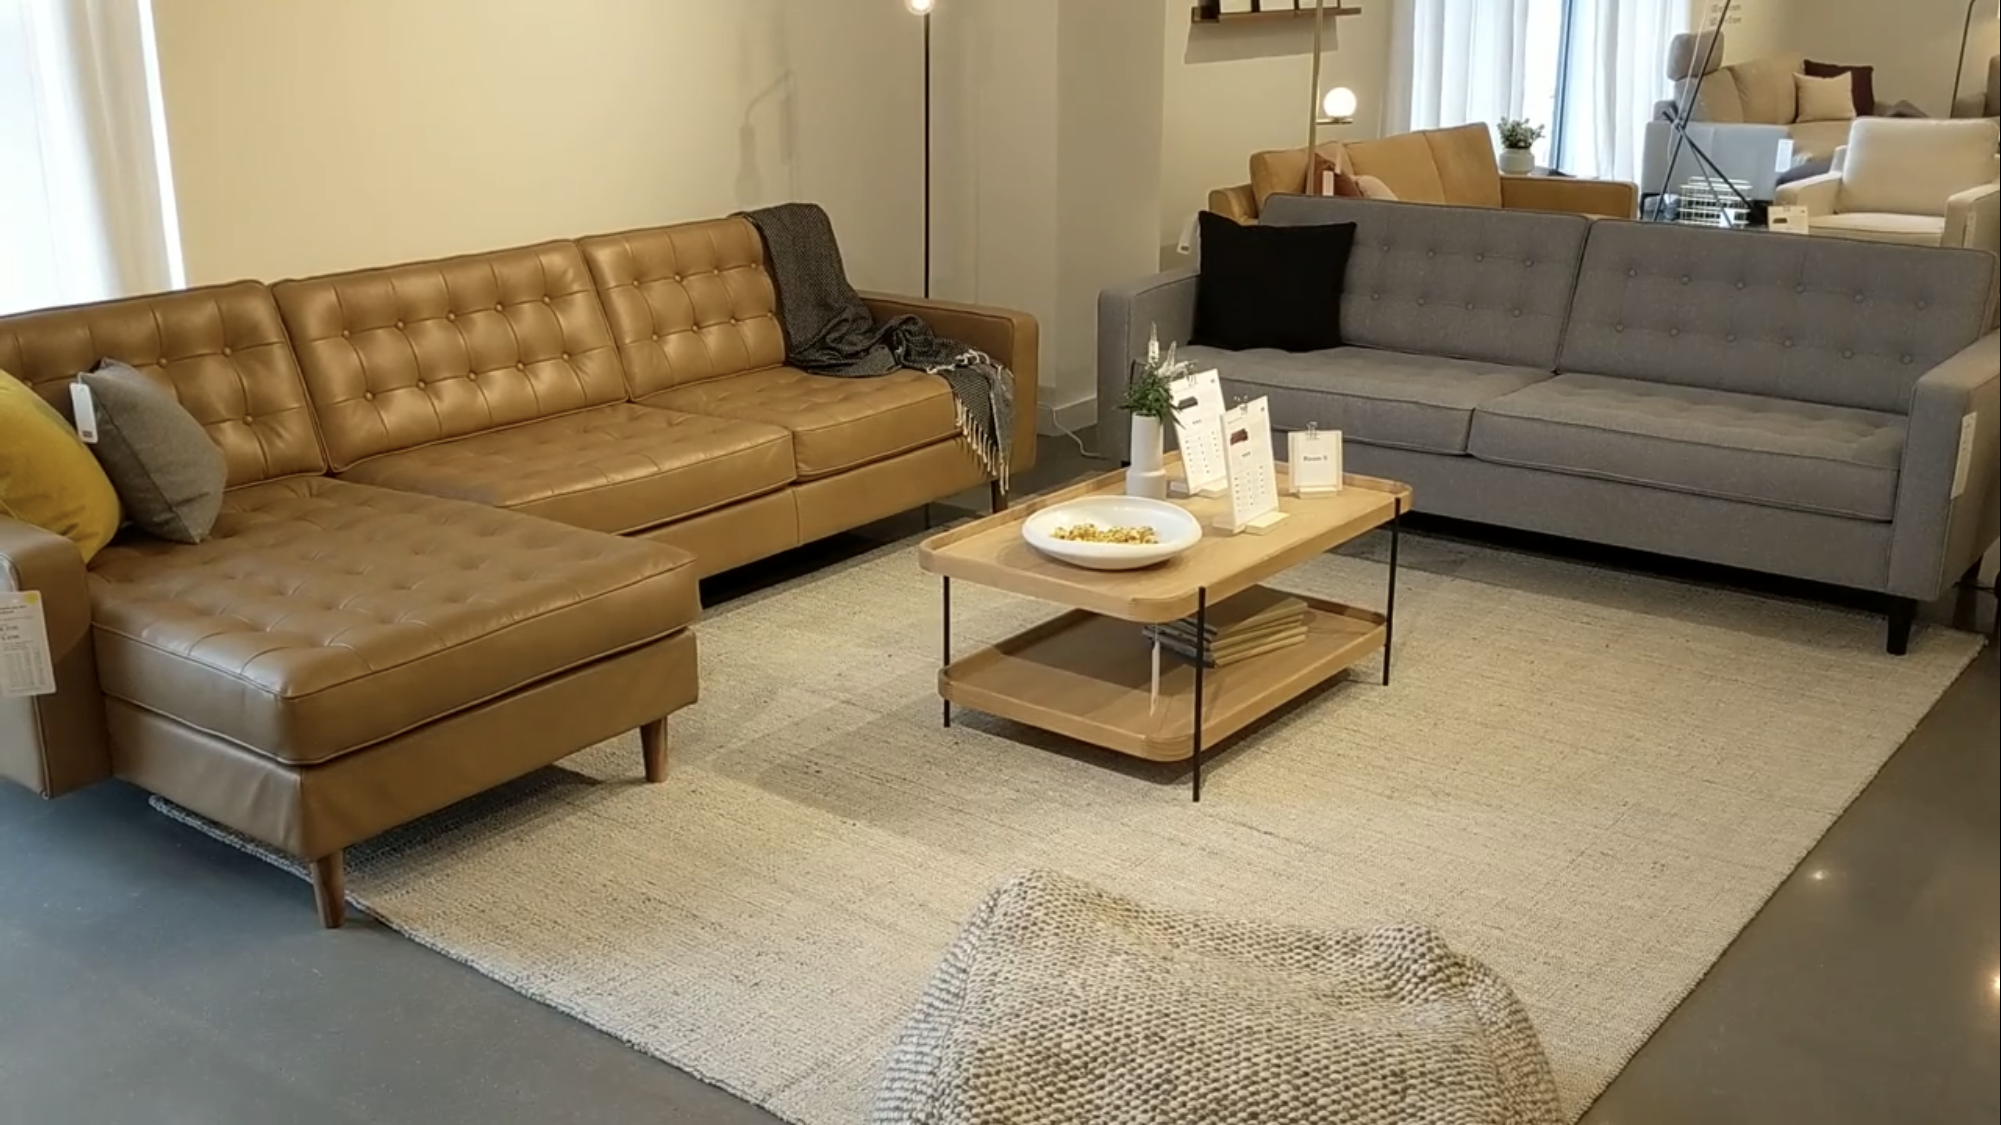 Reverie Low Arm Rhf Apartment Sofa In Carnival Lager